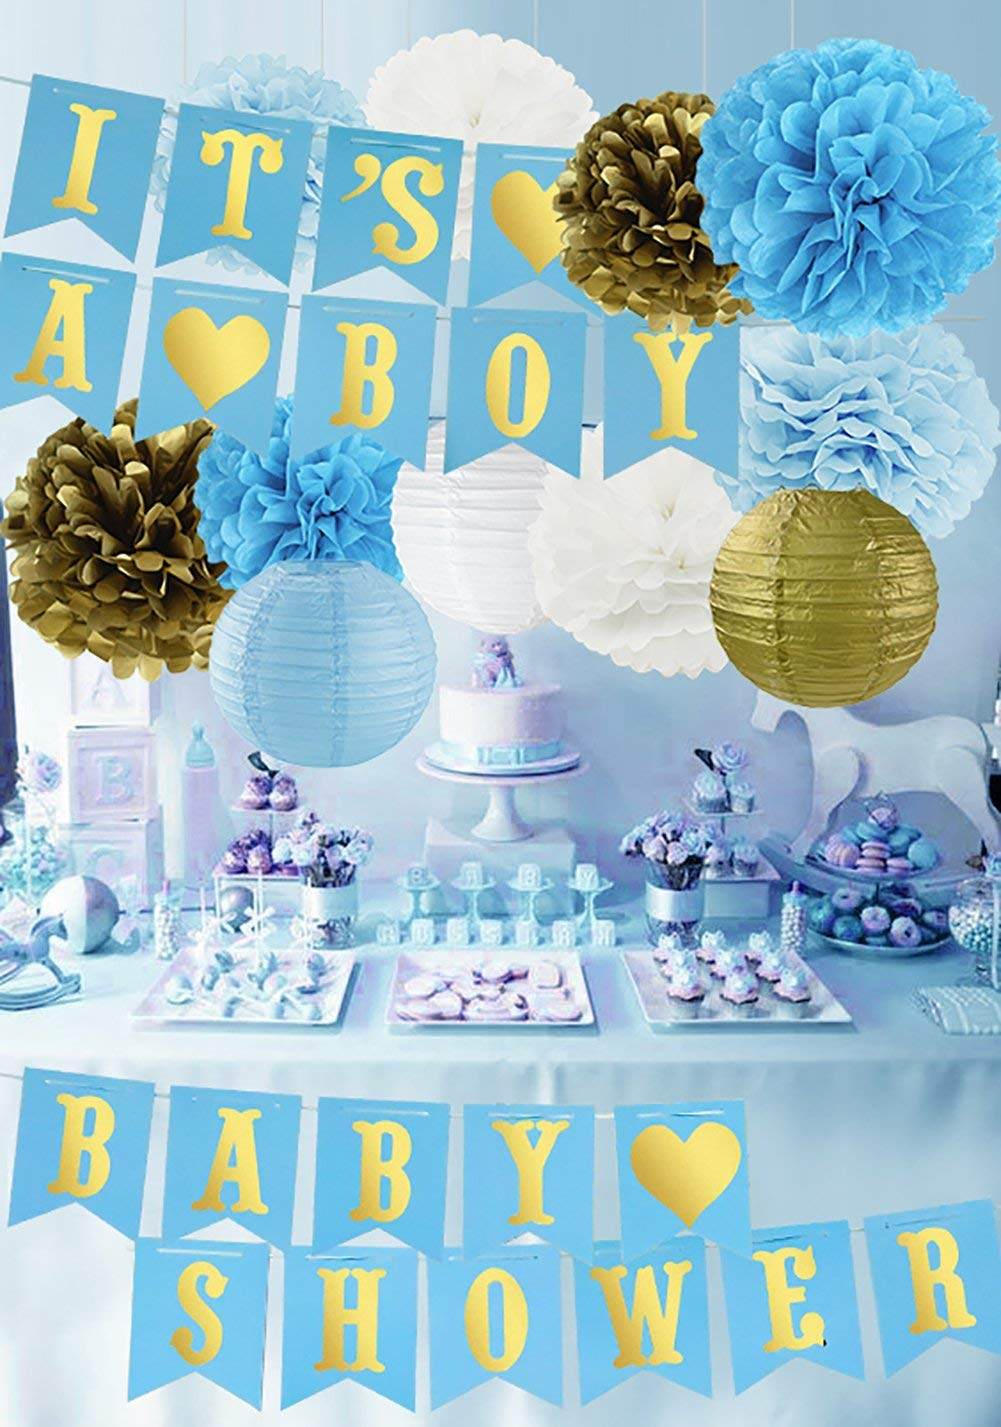 Baby Shower Decorations for Boy Kit Baby Shower IT'S A BOY Banner, Tissue Paper Pom Poms Paper Lanterns Turquoise Blue Gold Hanging Party Supplies